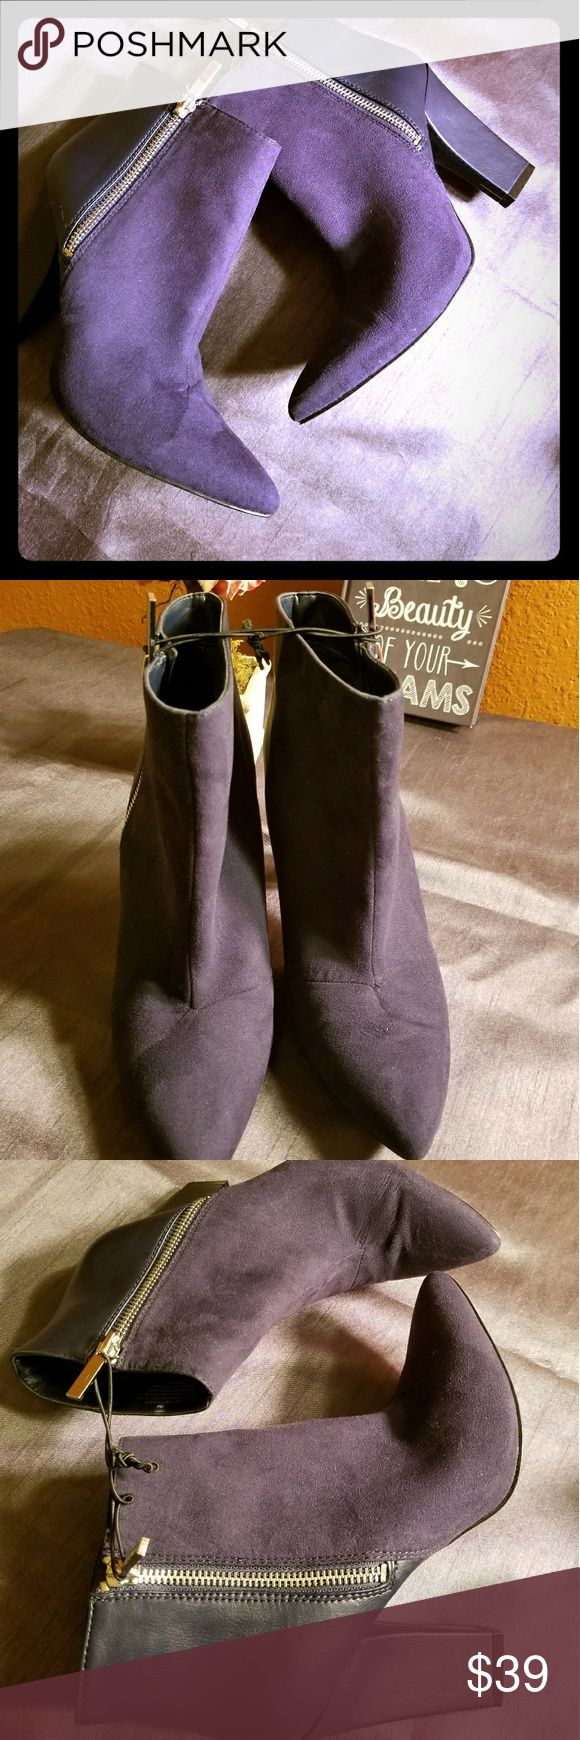 """✔BRAND NEW✔Nine west pointed ankle boots This cute booties is new and is on great price! Never been worn. 3 1/2"""" heels and it's so comfy. Perfect for your casual look😉 Nine West Shoes Ankle Boots & Booties"""